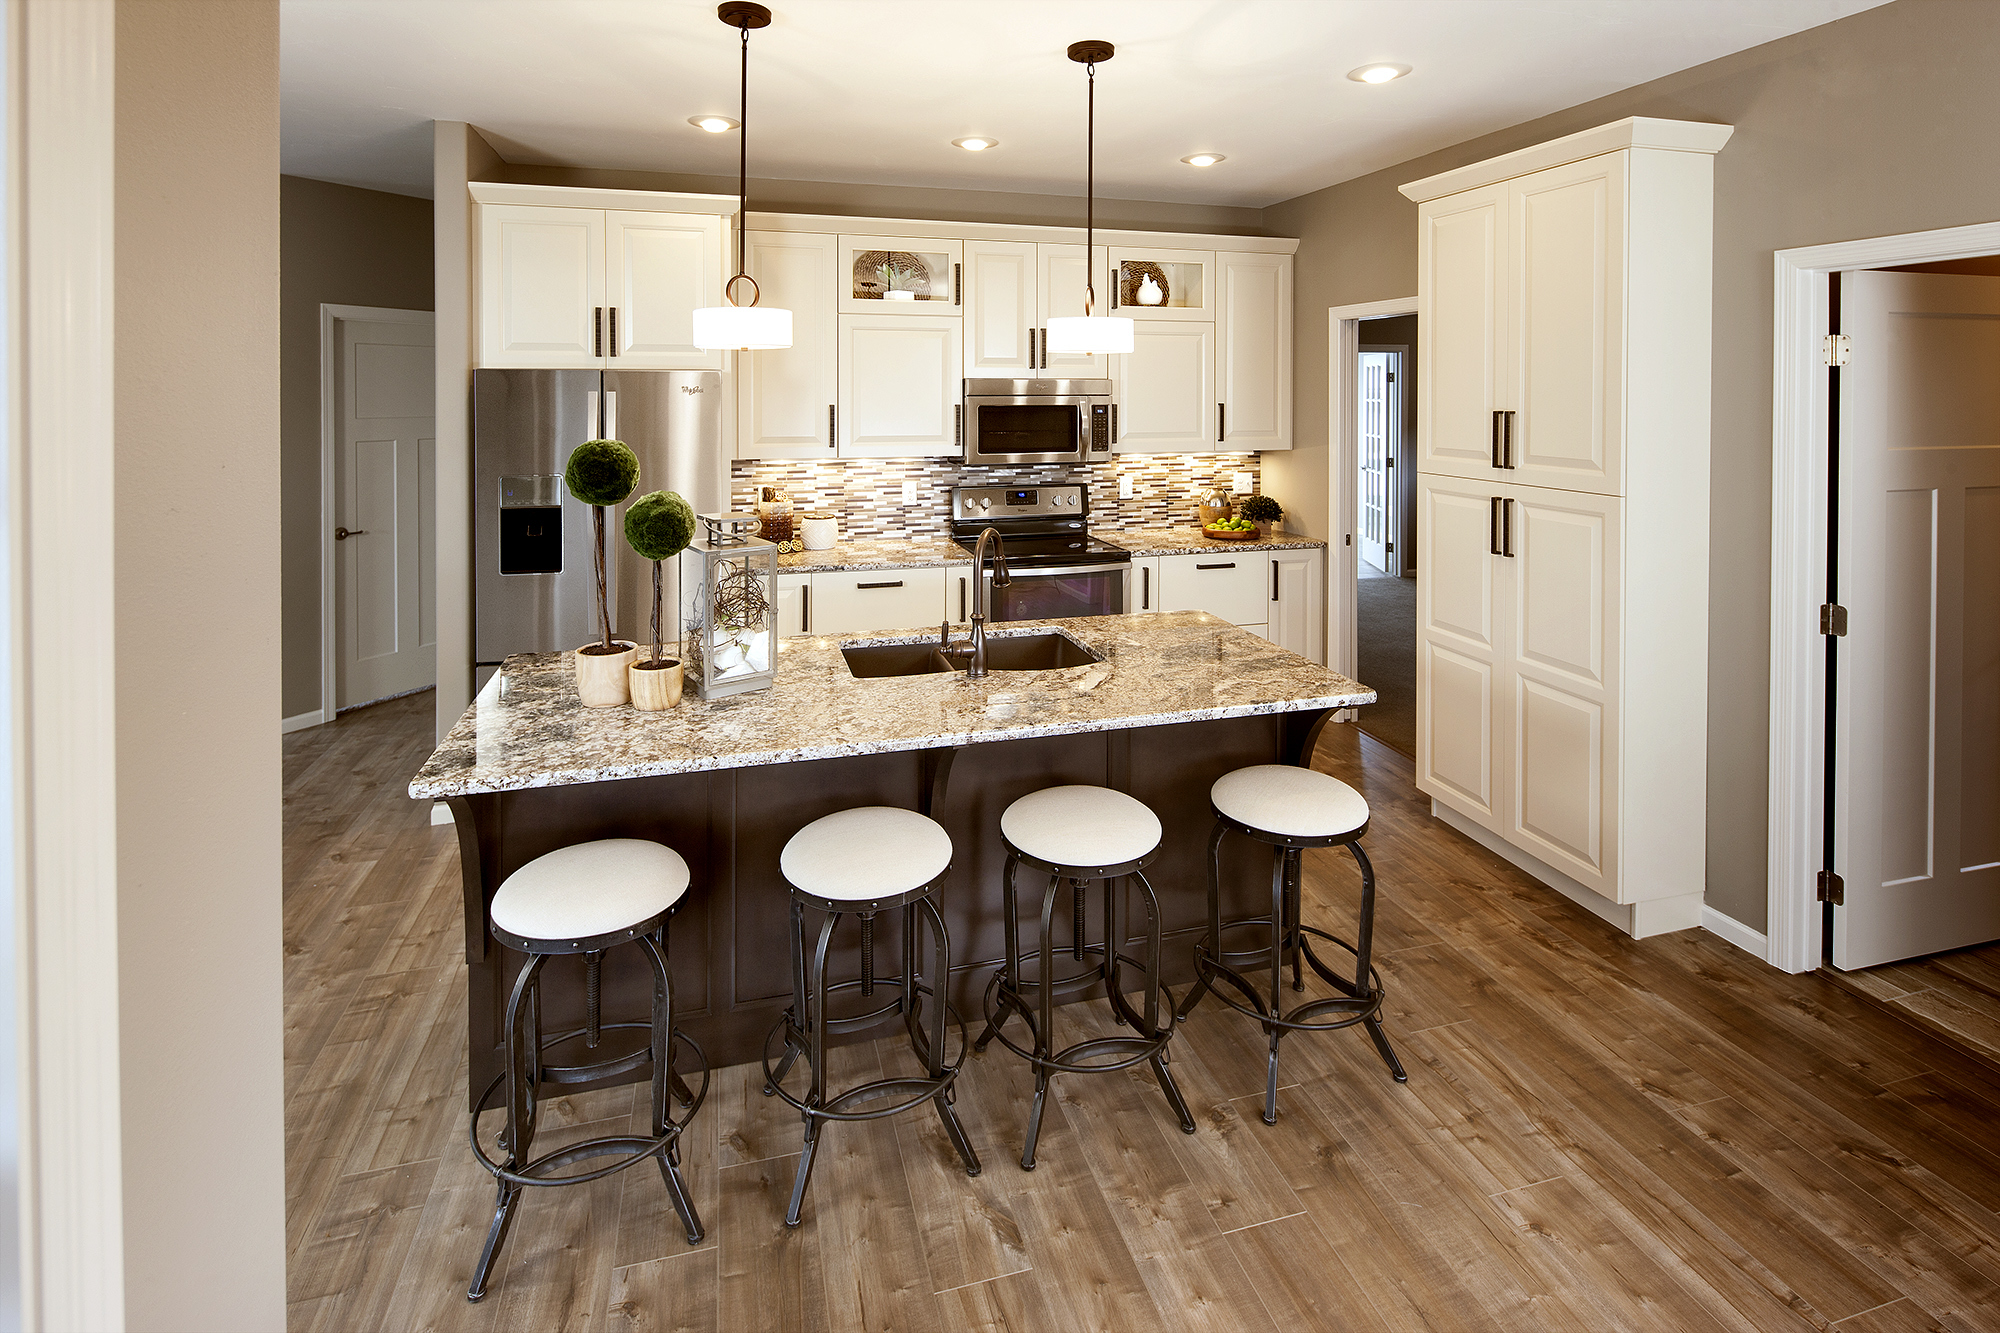 Painted Kitchen Cabinets in Moderate White and Stained Island in Peppercorn by ShowplaceEVO - View 1